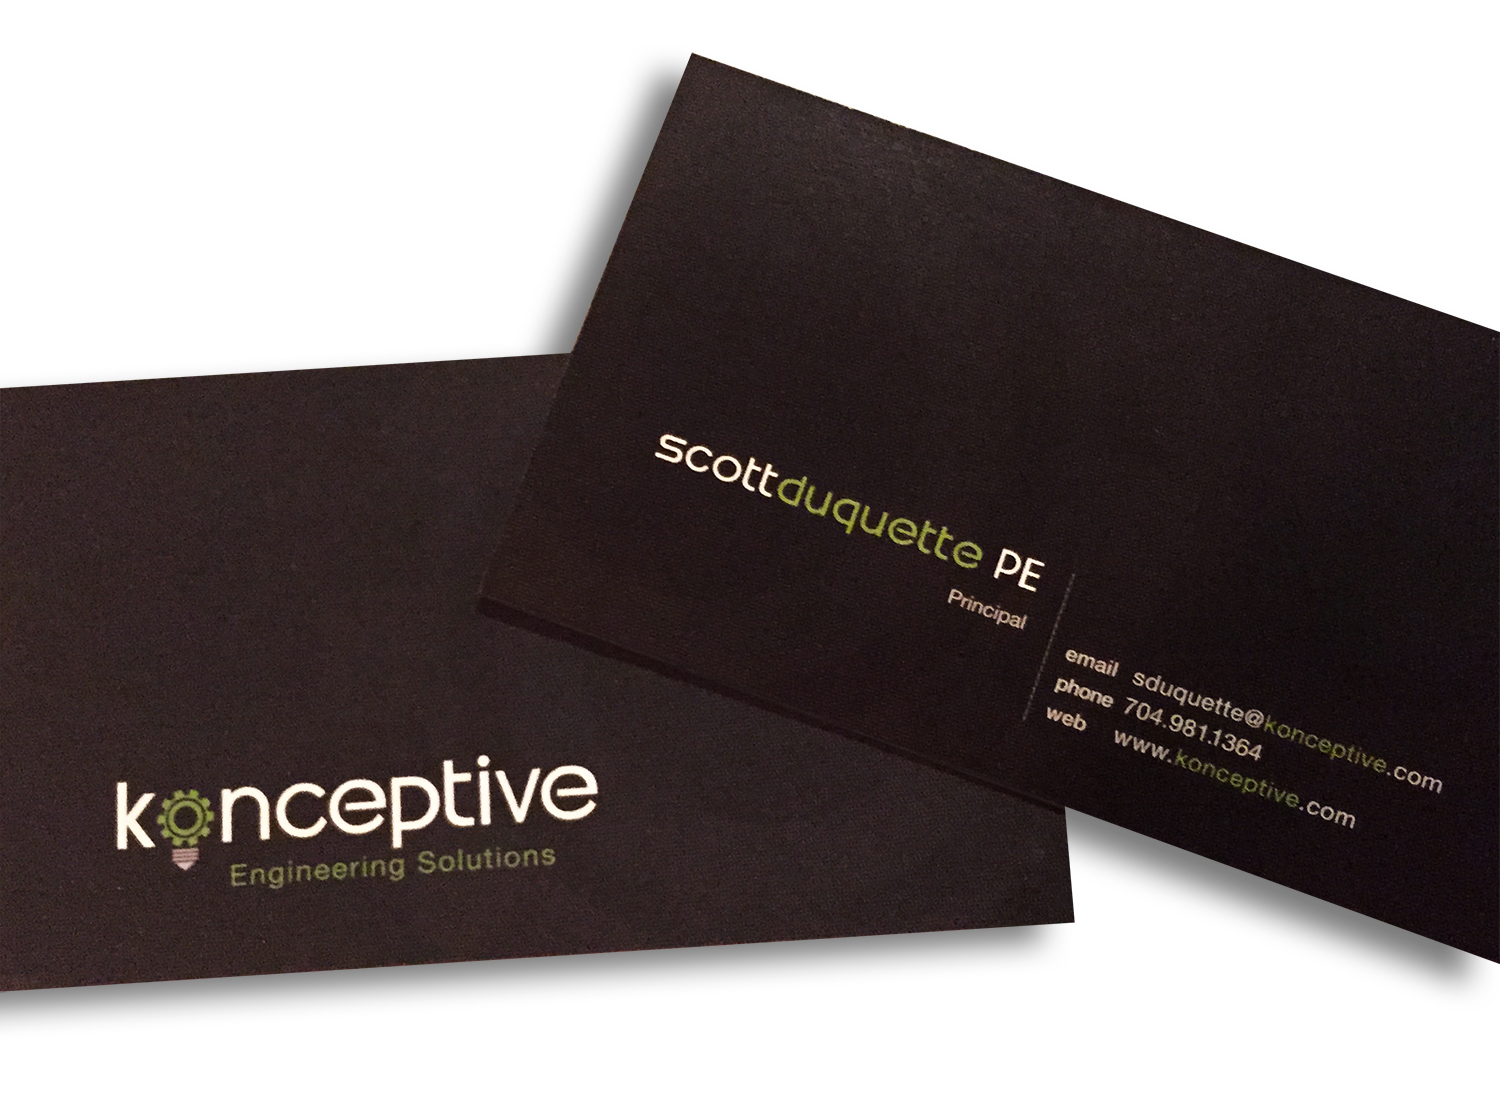 konceptive business card design